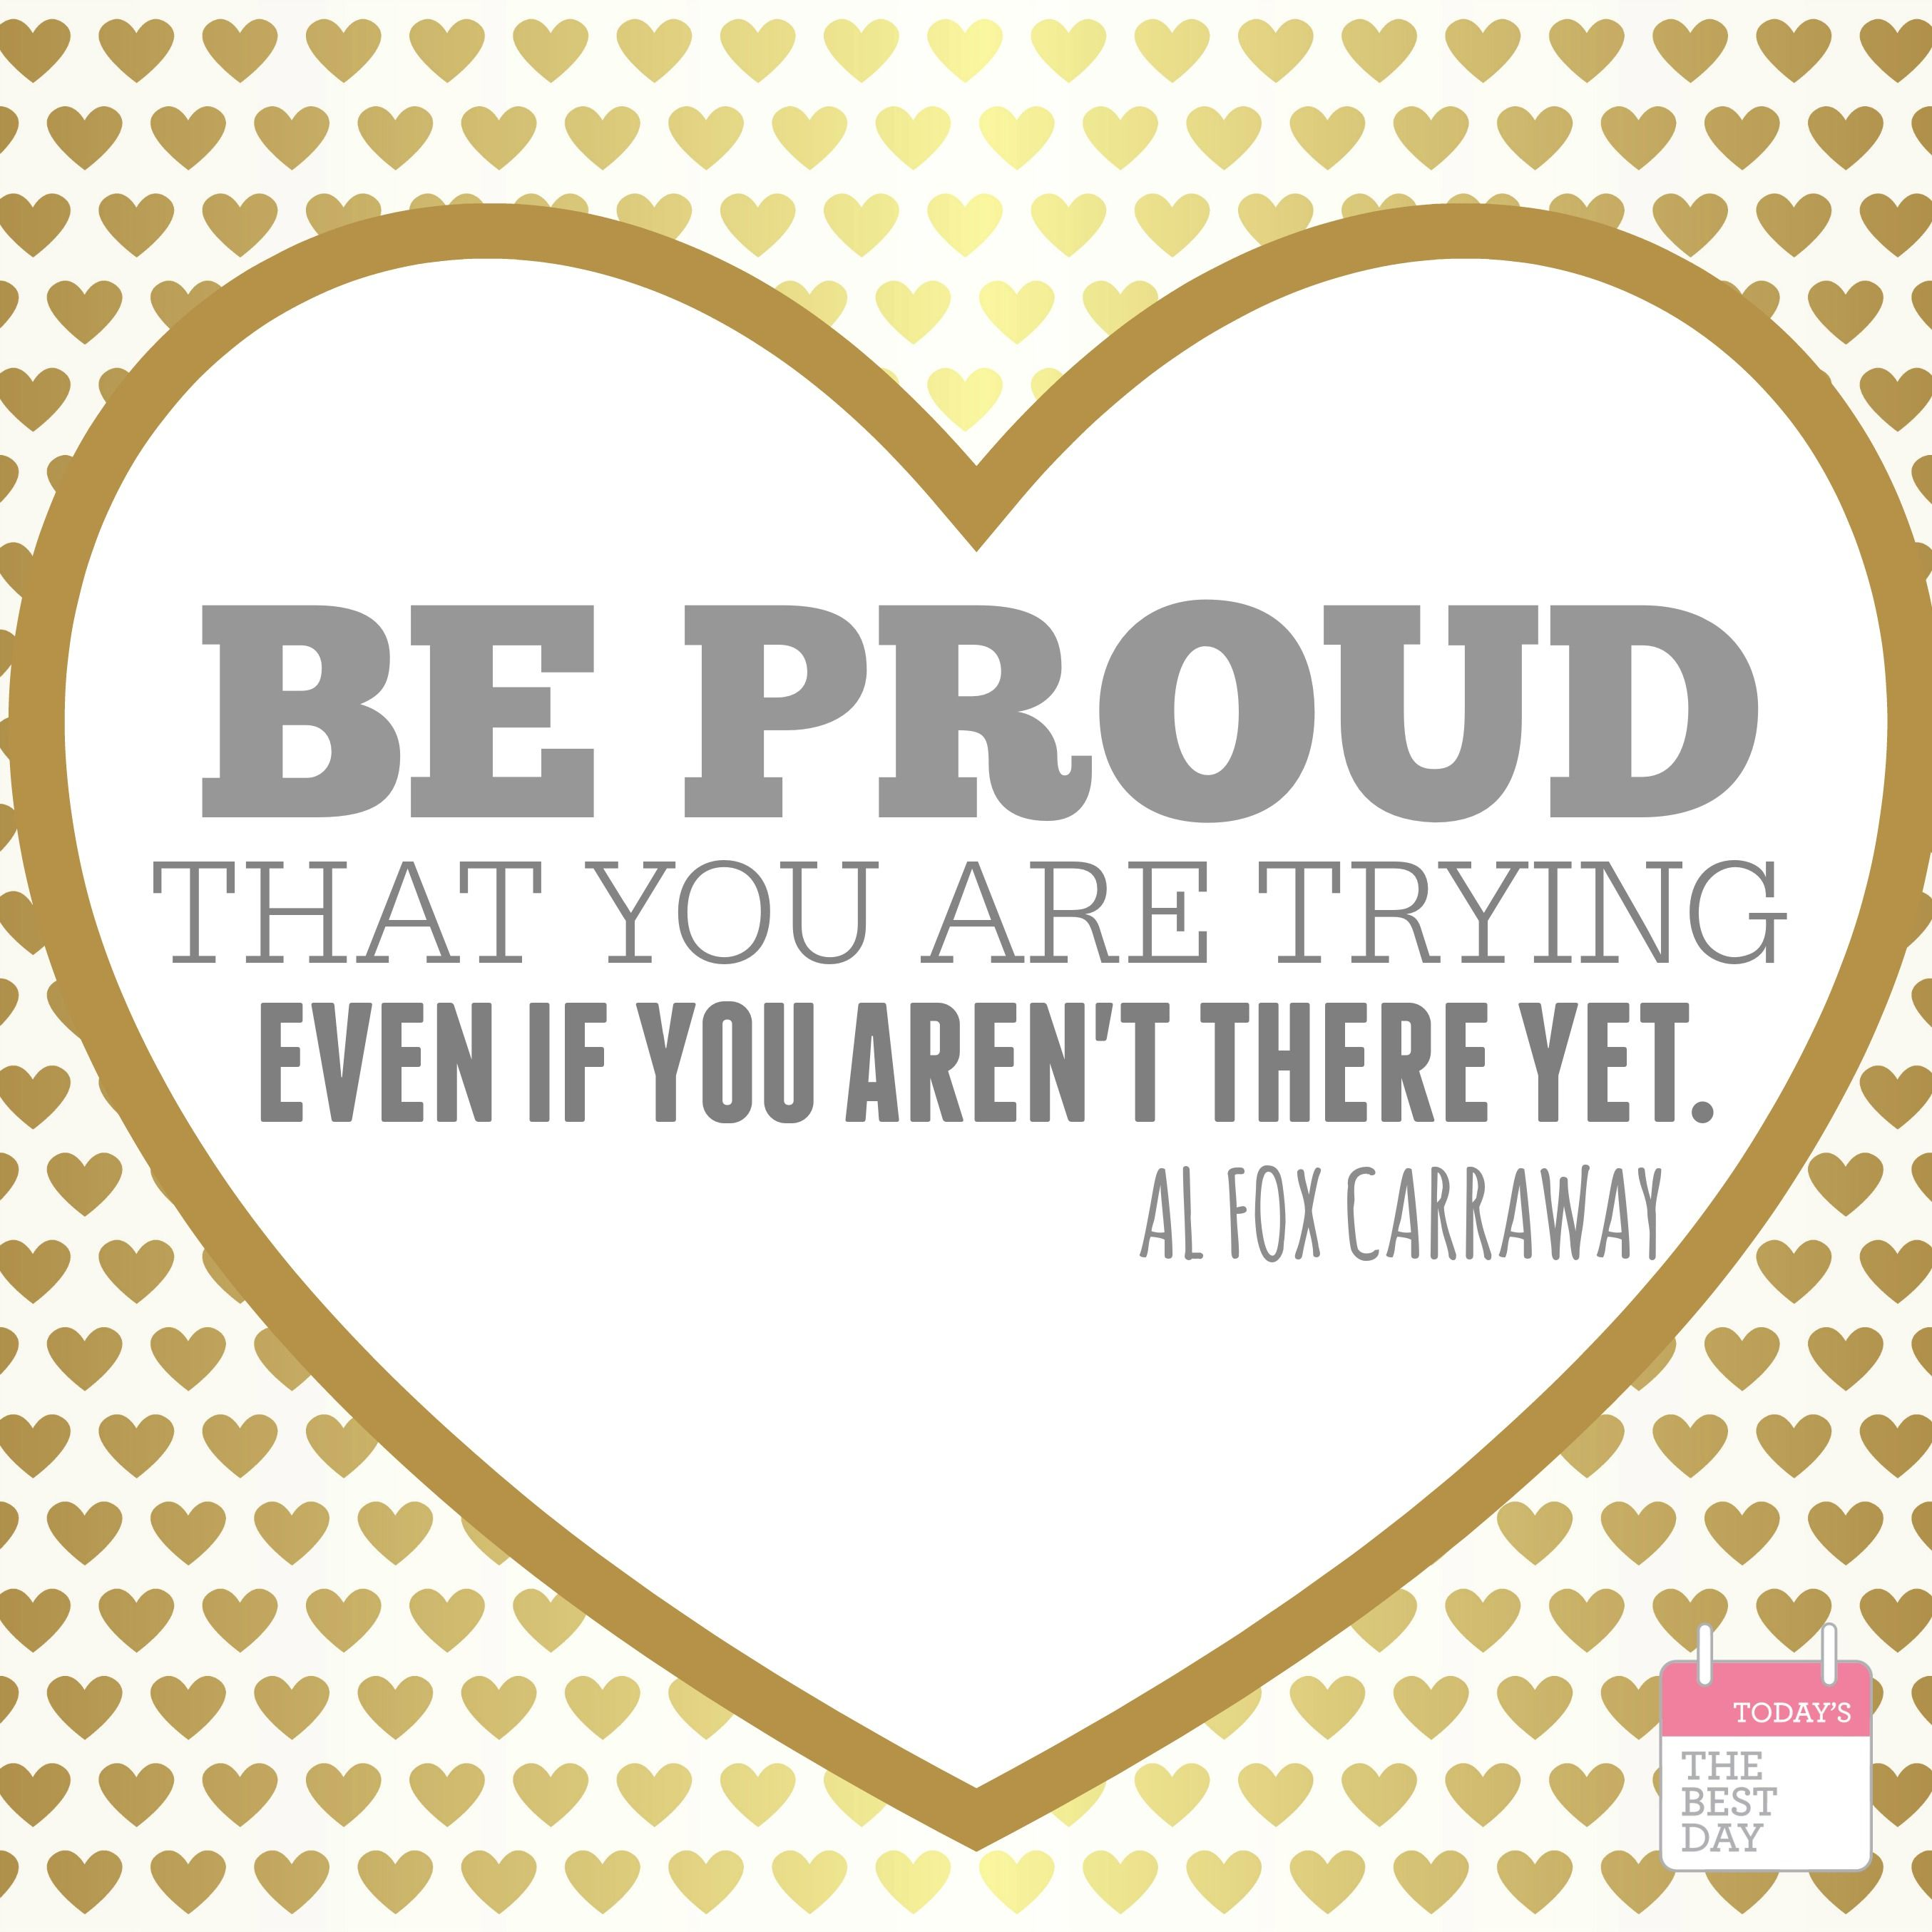 BE PROUD THAT YOU ARE TRYING - Even if you aren't there yet! <3 LOVE this quote and free printable